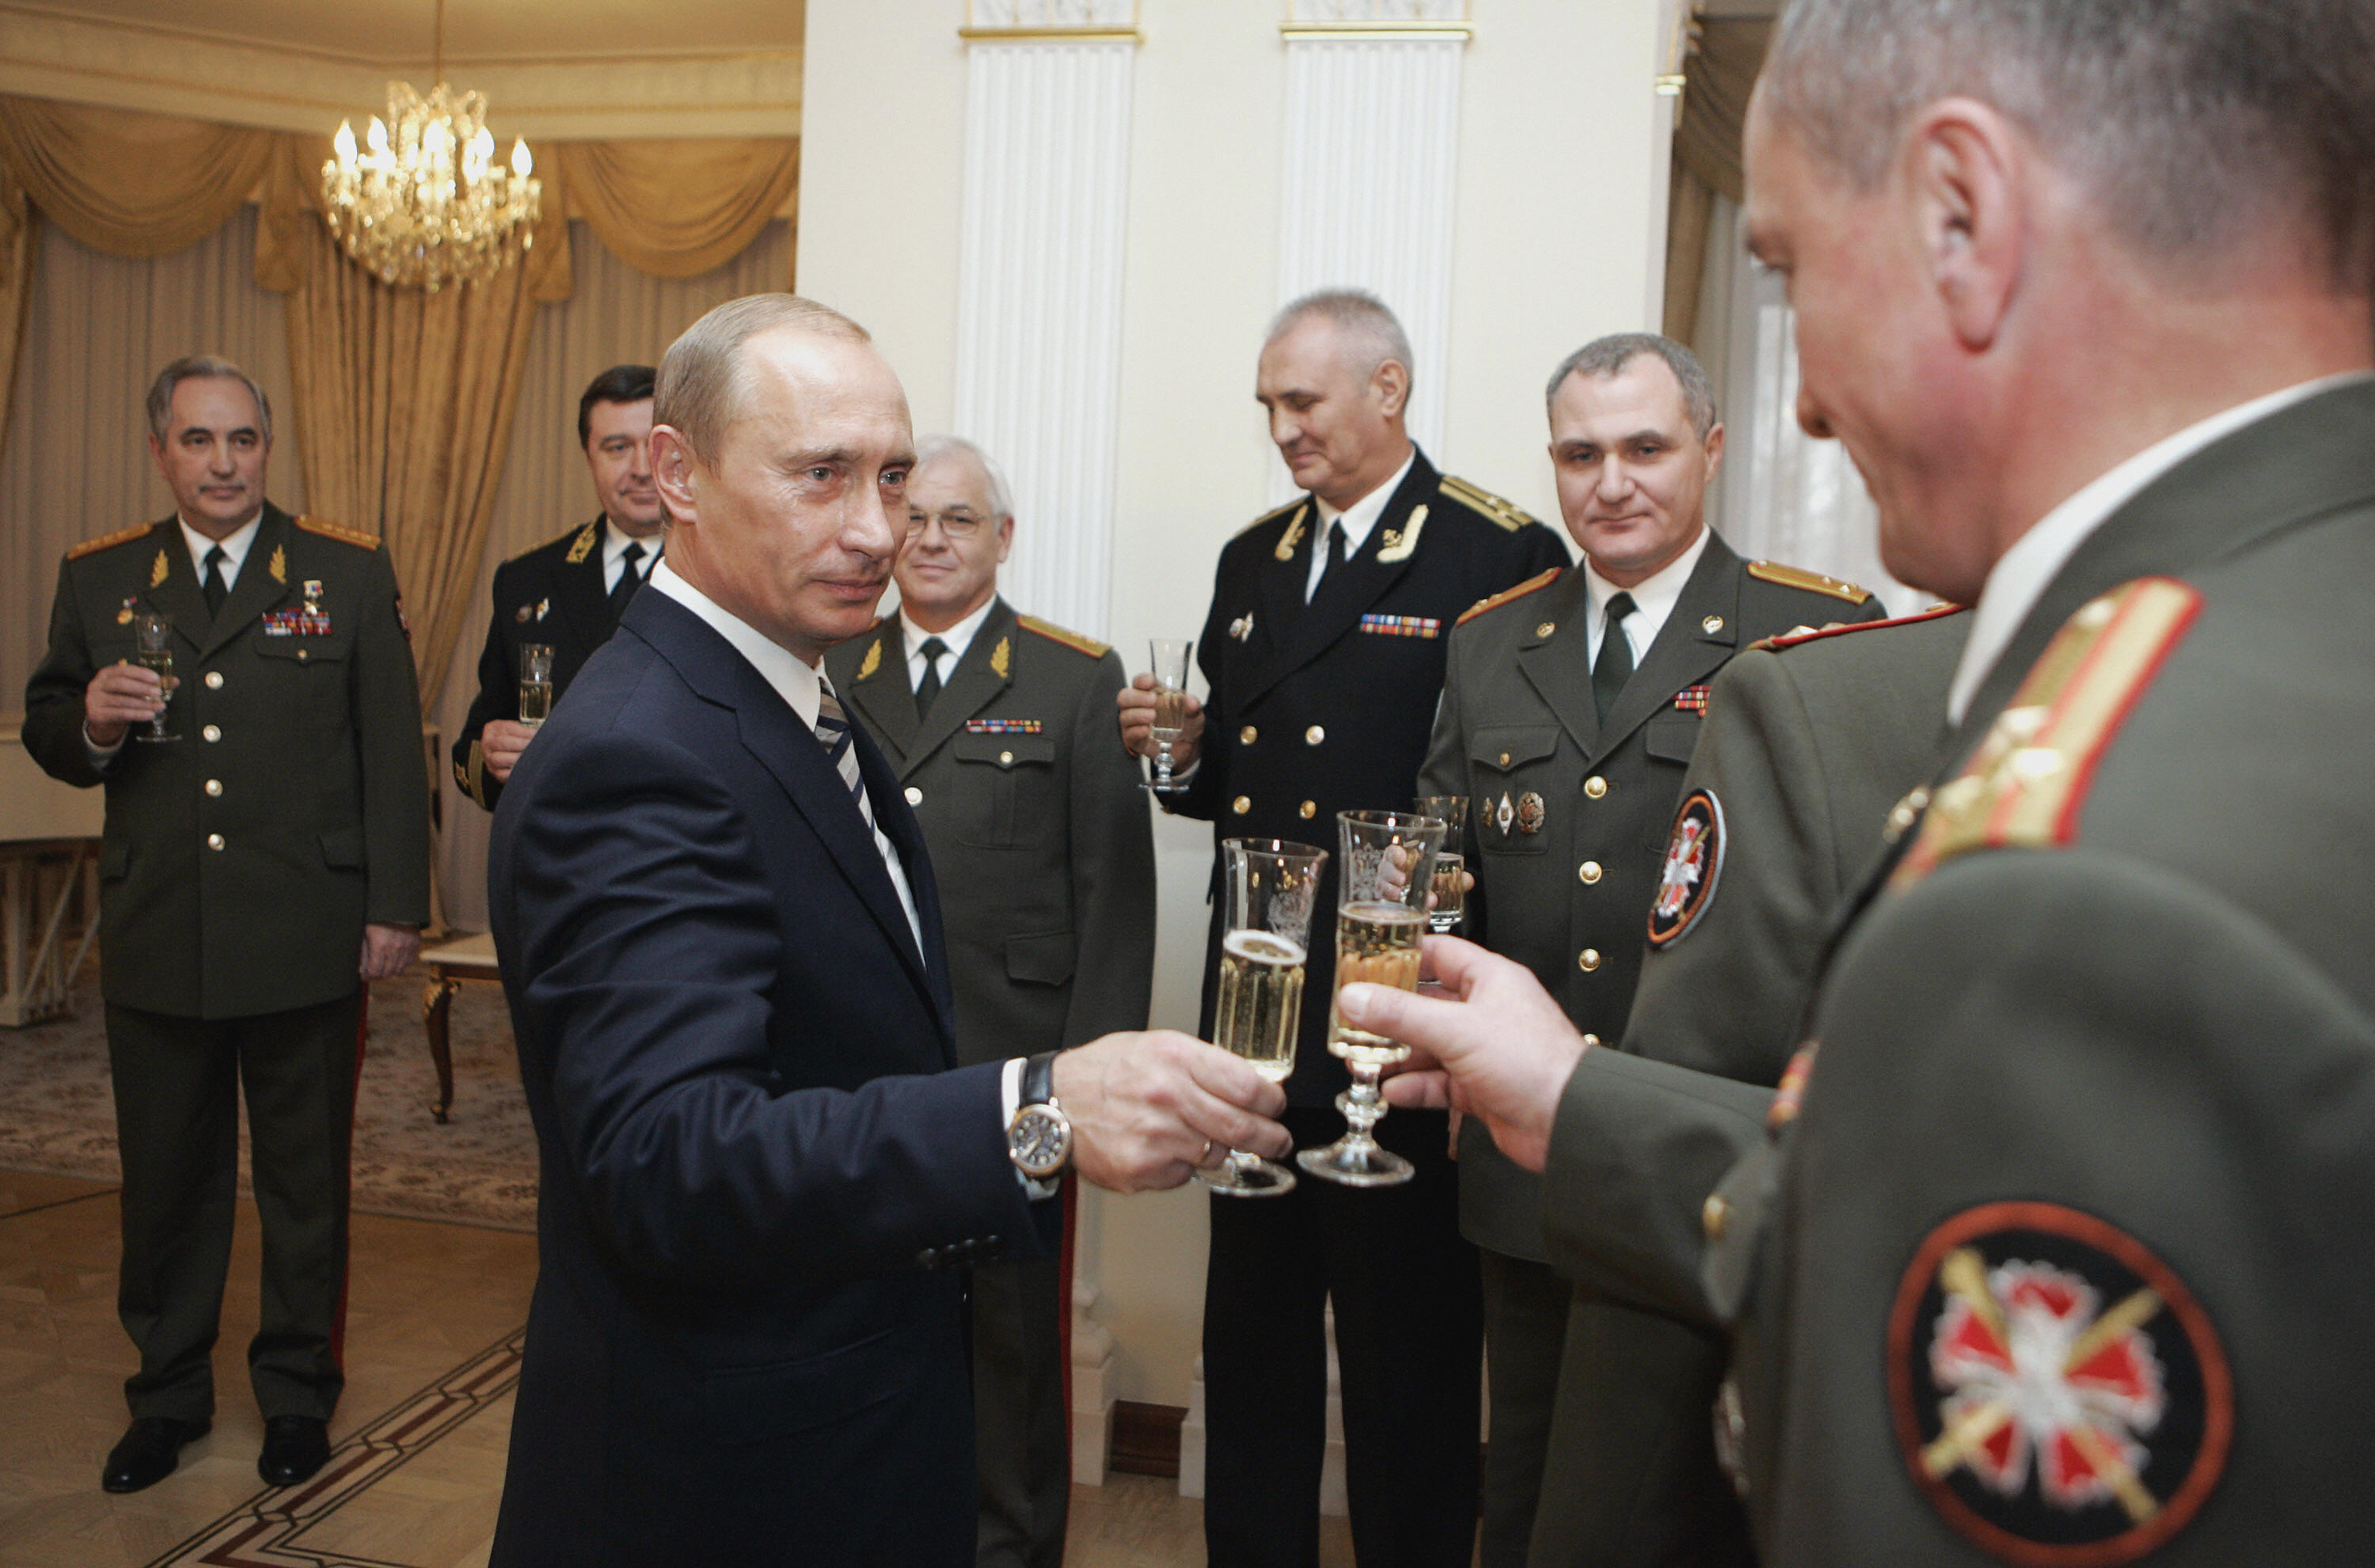 Russian President Vladimir Putin (C) toasts with officers of the State Intelligence Agency at the presidential residence in Novo-Ogarevo, 02 November 2007. AFP PHOTO / RIA NOVOSTI / KREMLIN POOL / DMITRY ASTAKHOV